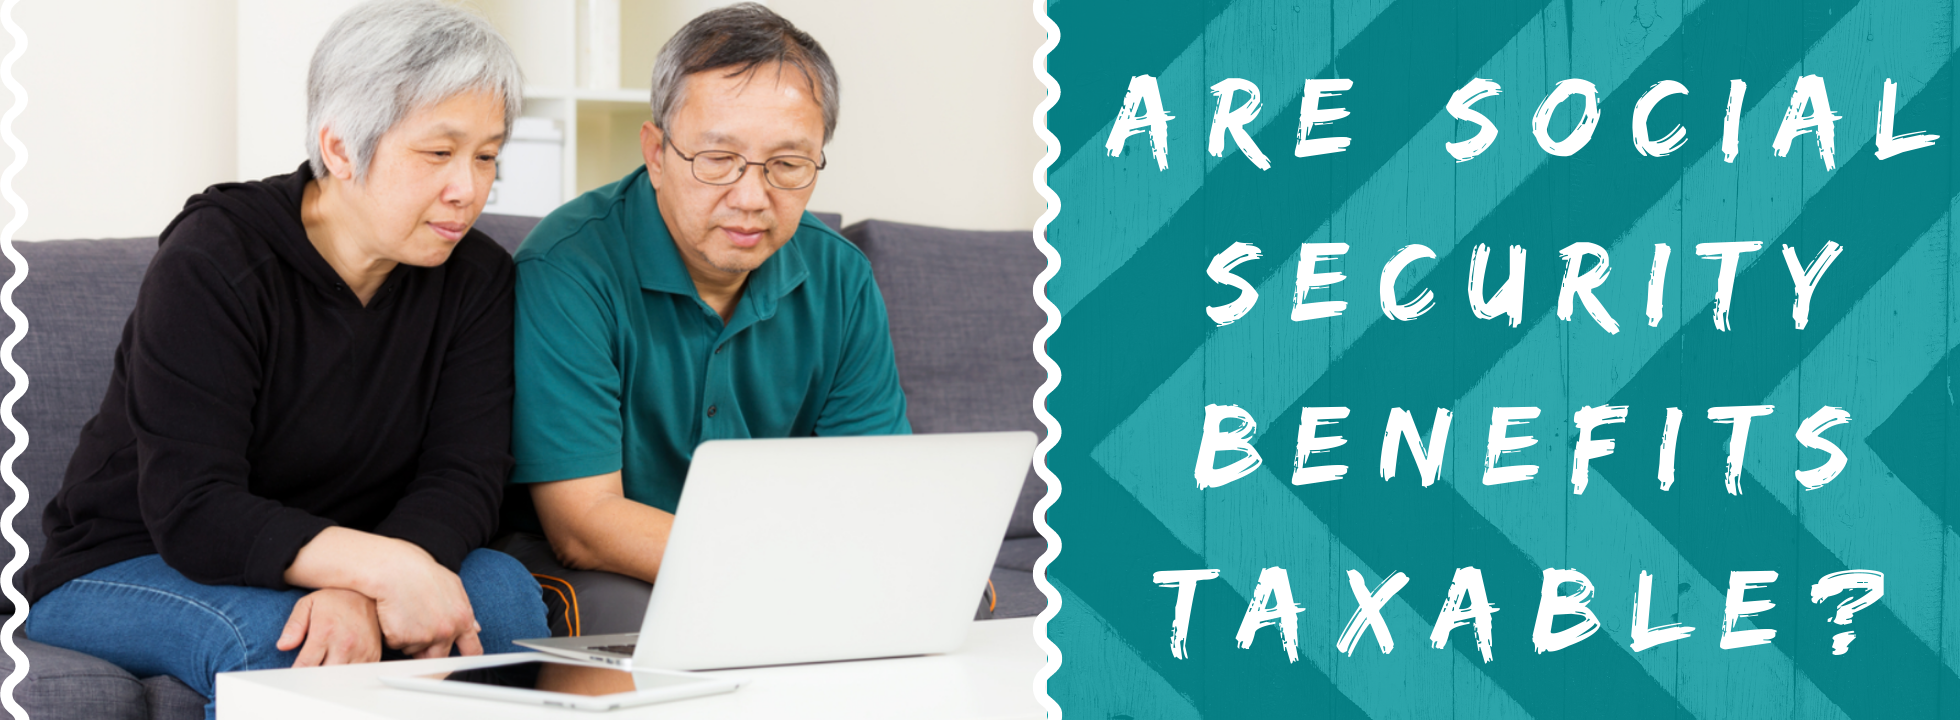 Are Social Security Benefits Taxable_